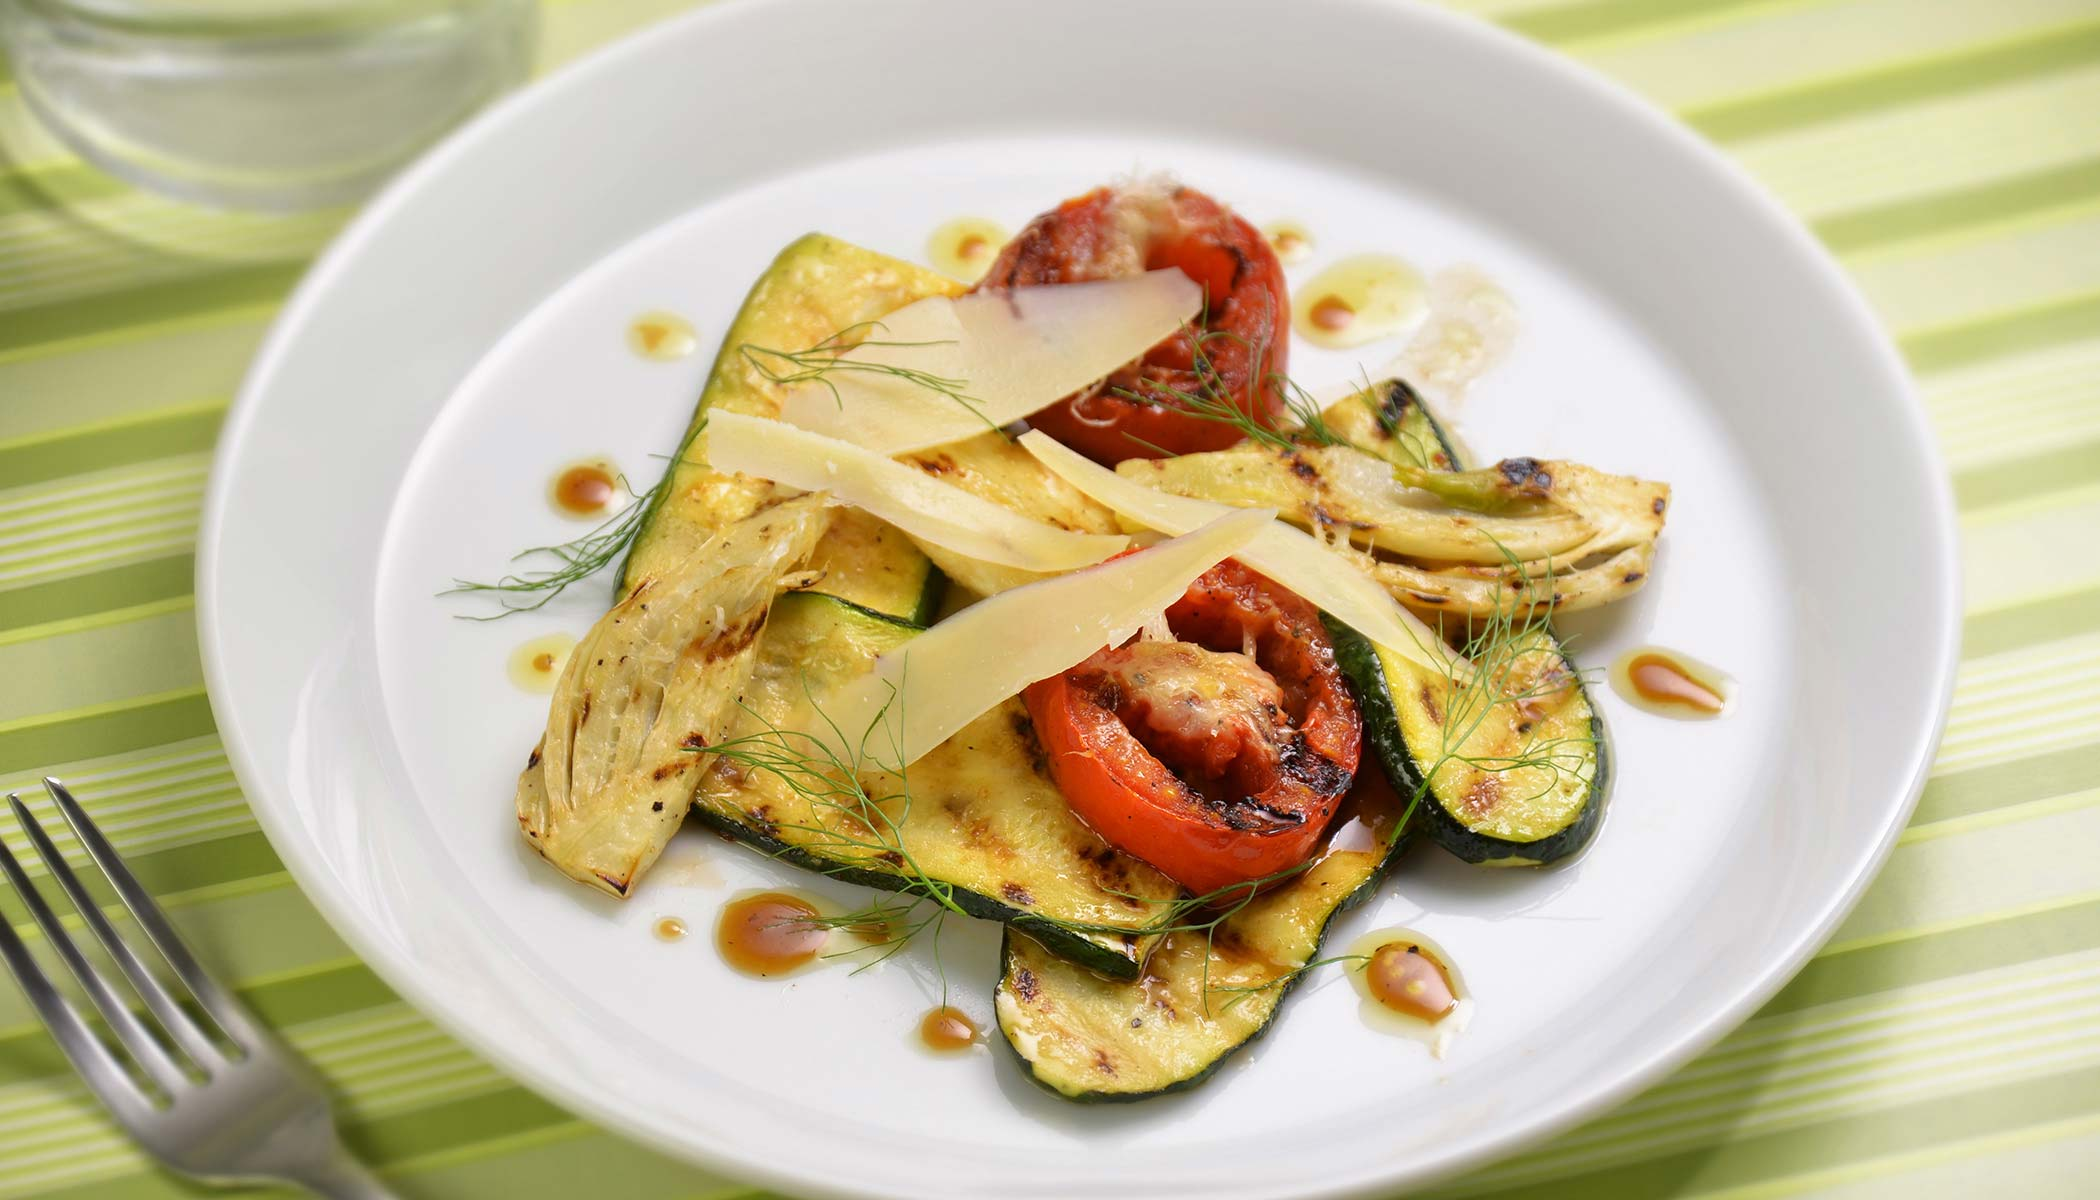 Grilled Vegetables with Parmesan Cheese